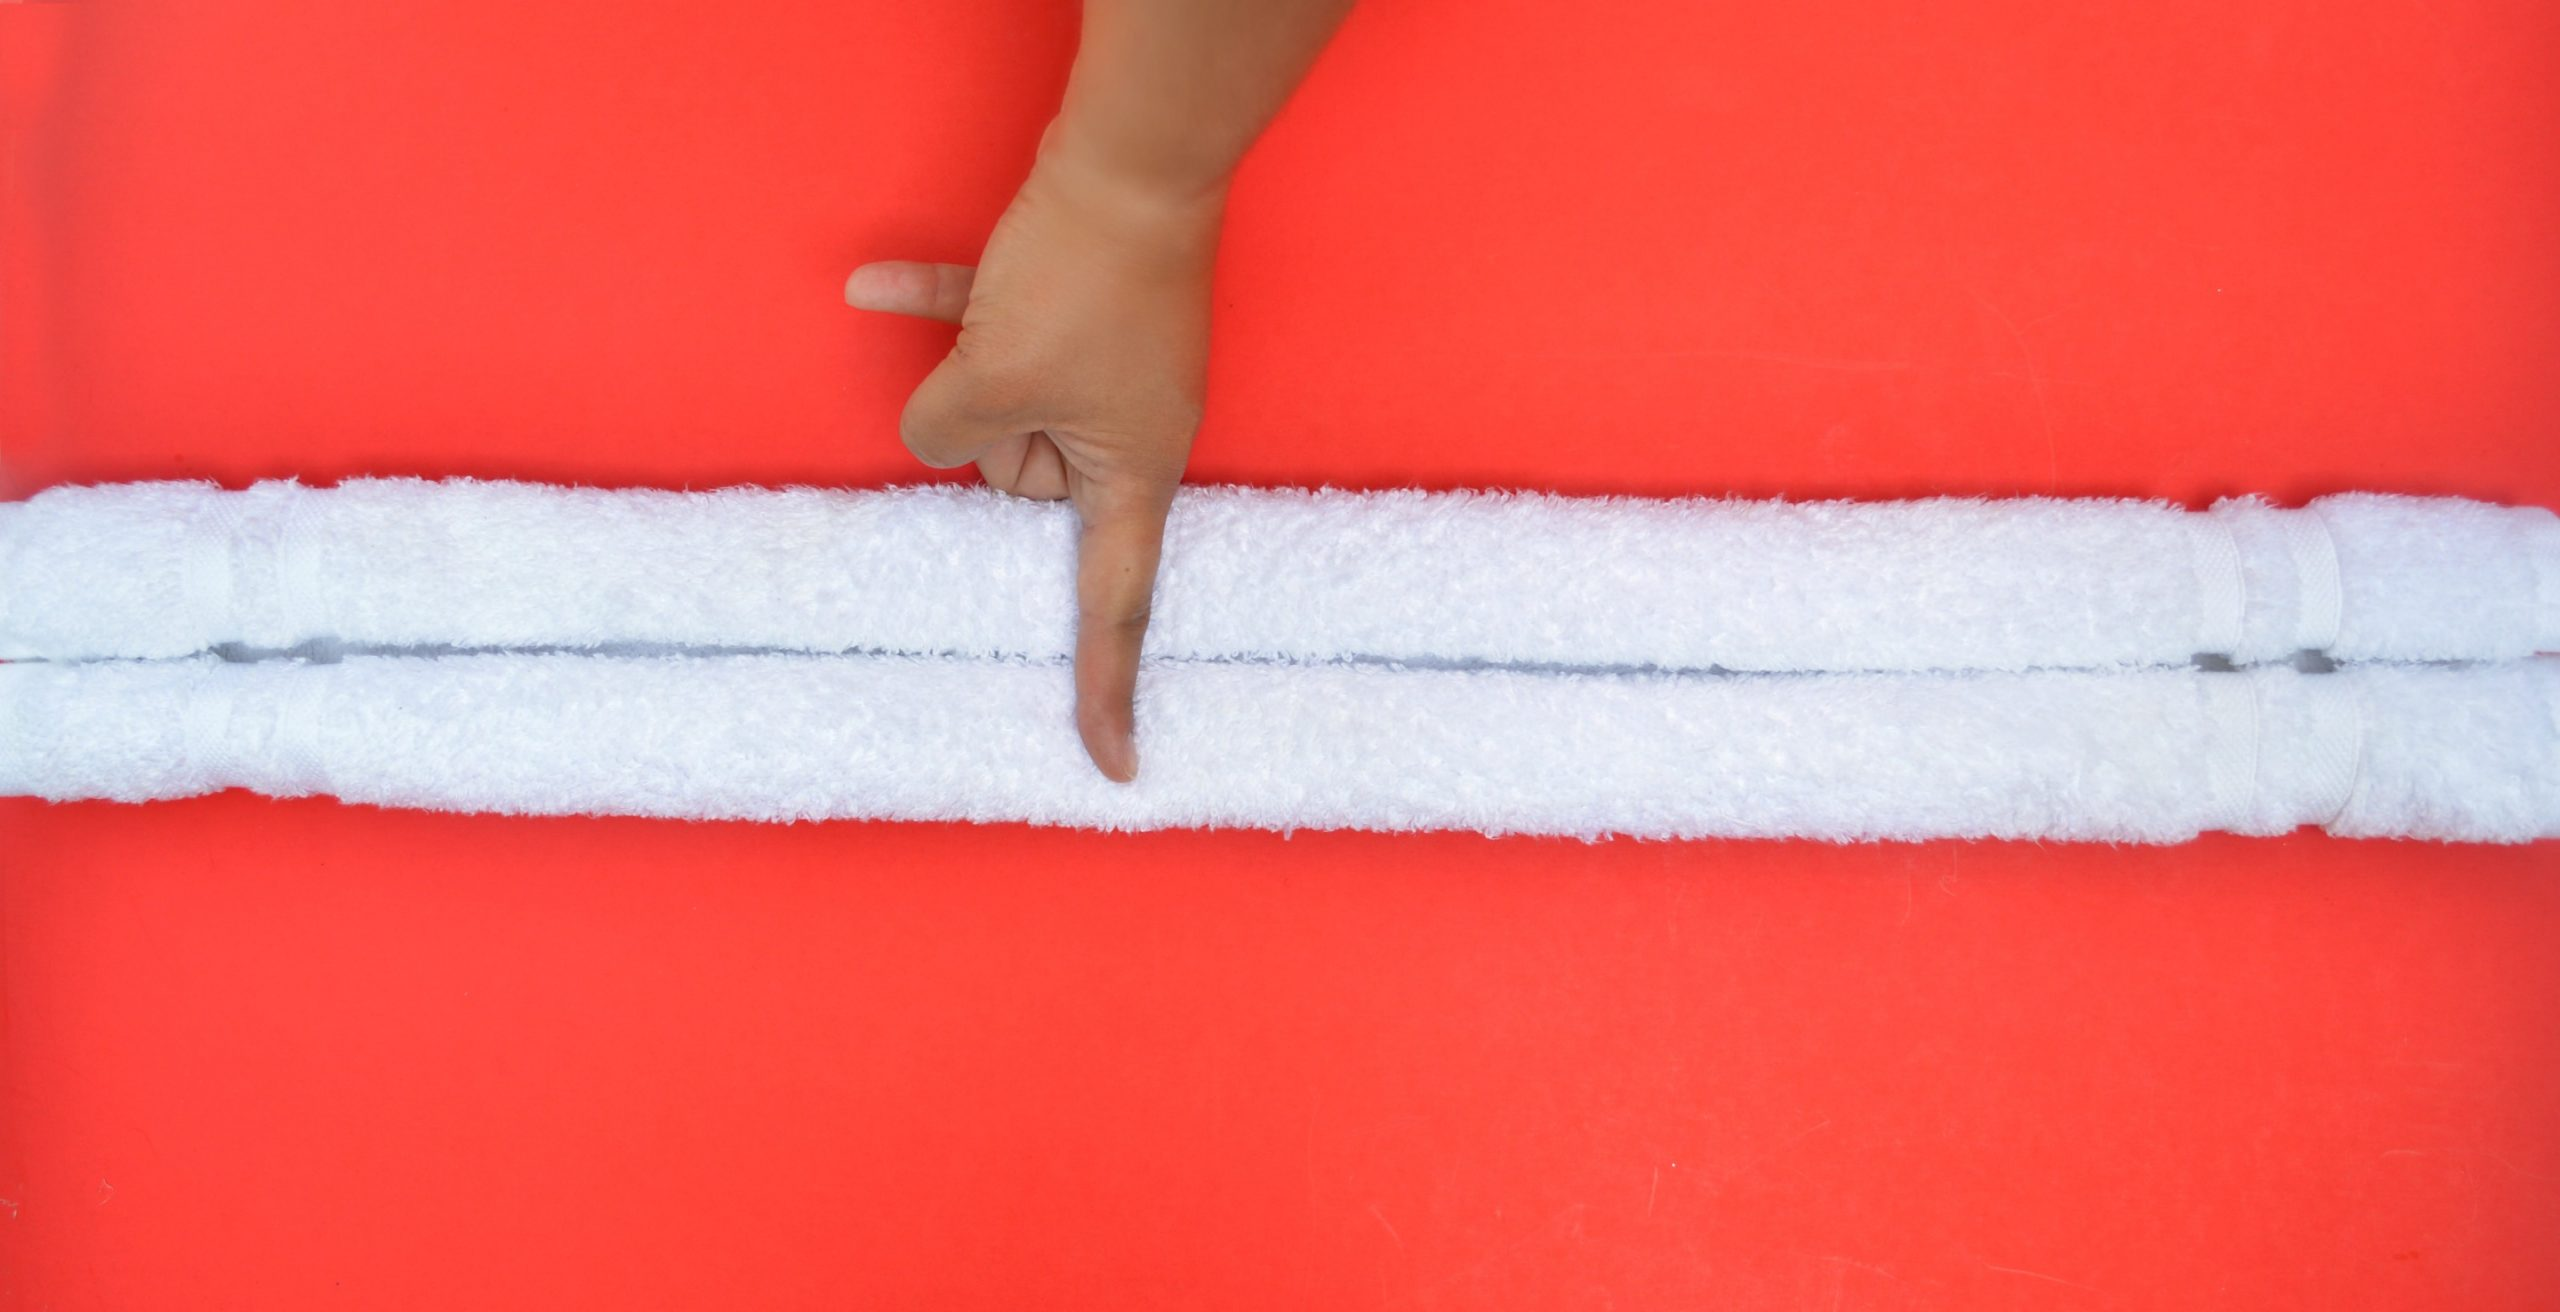 finger on the middle of a rolled towel on a red background